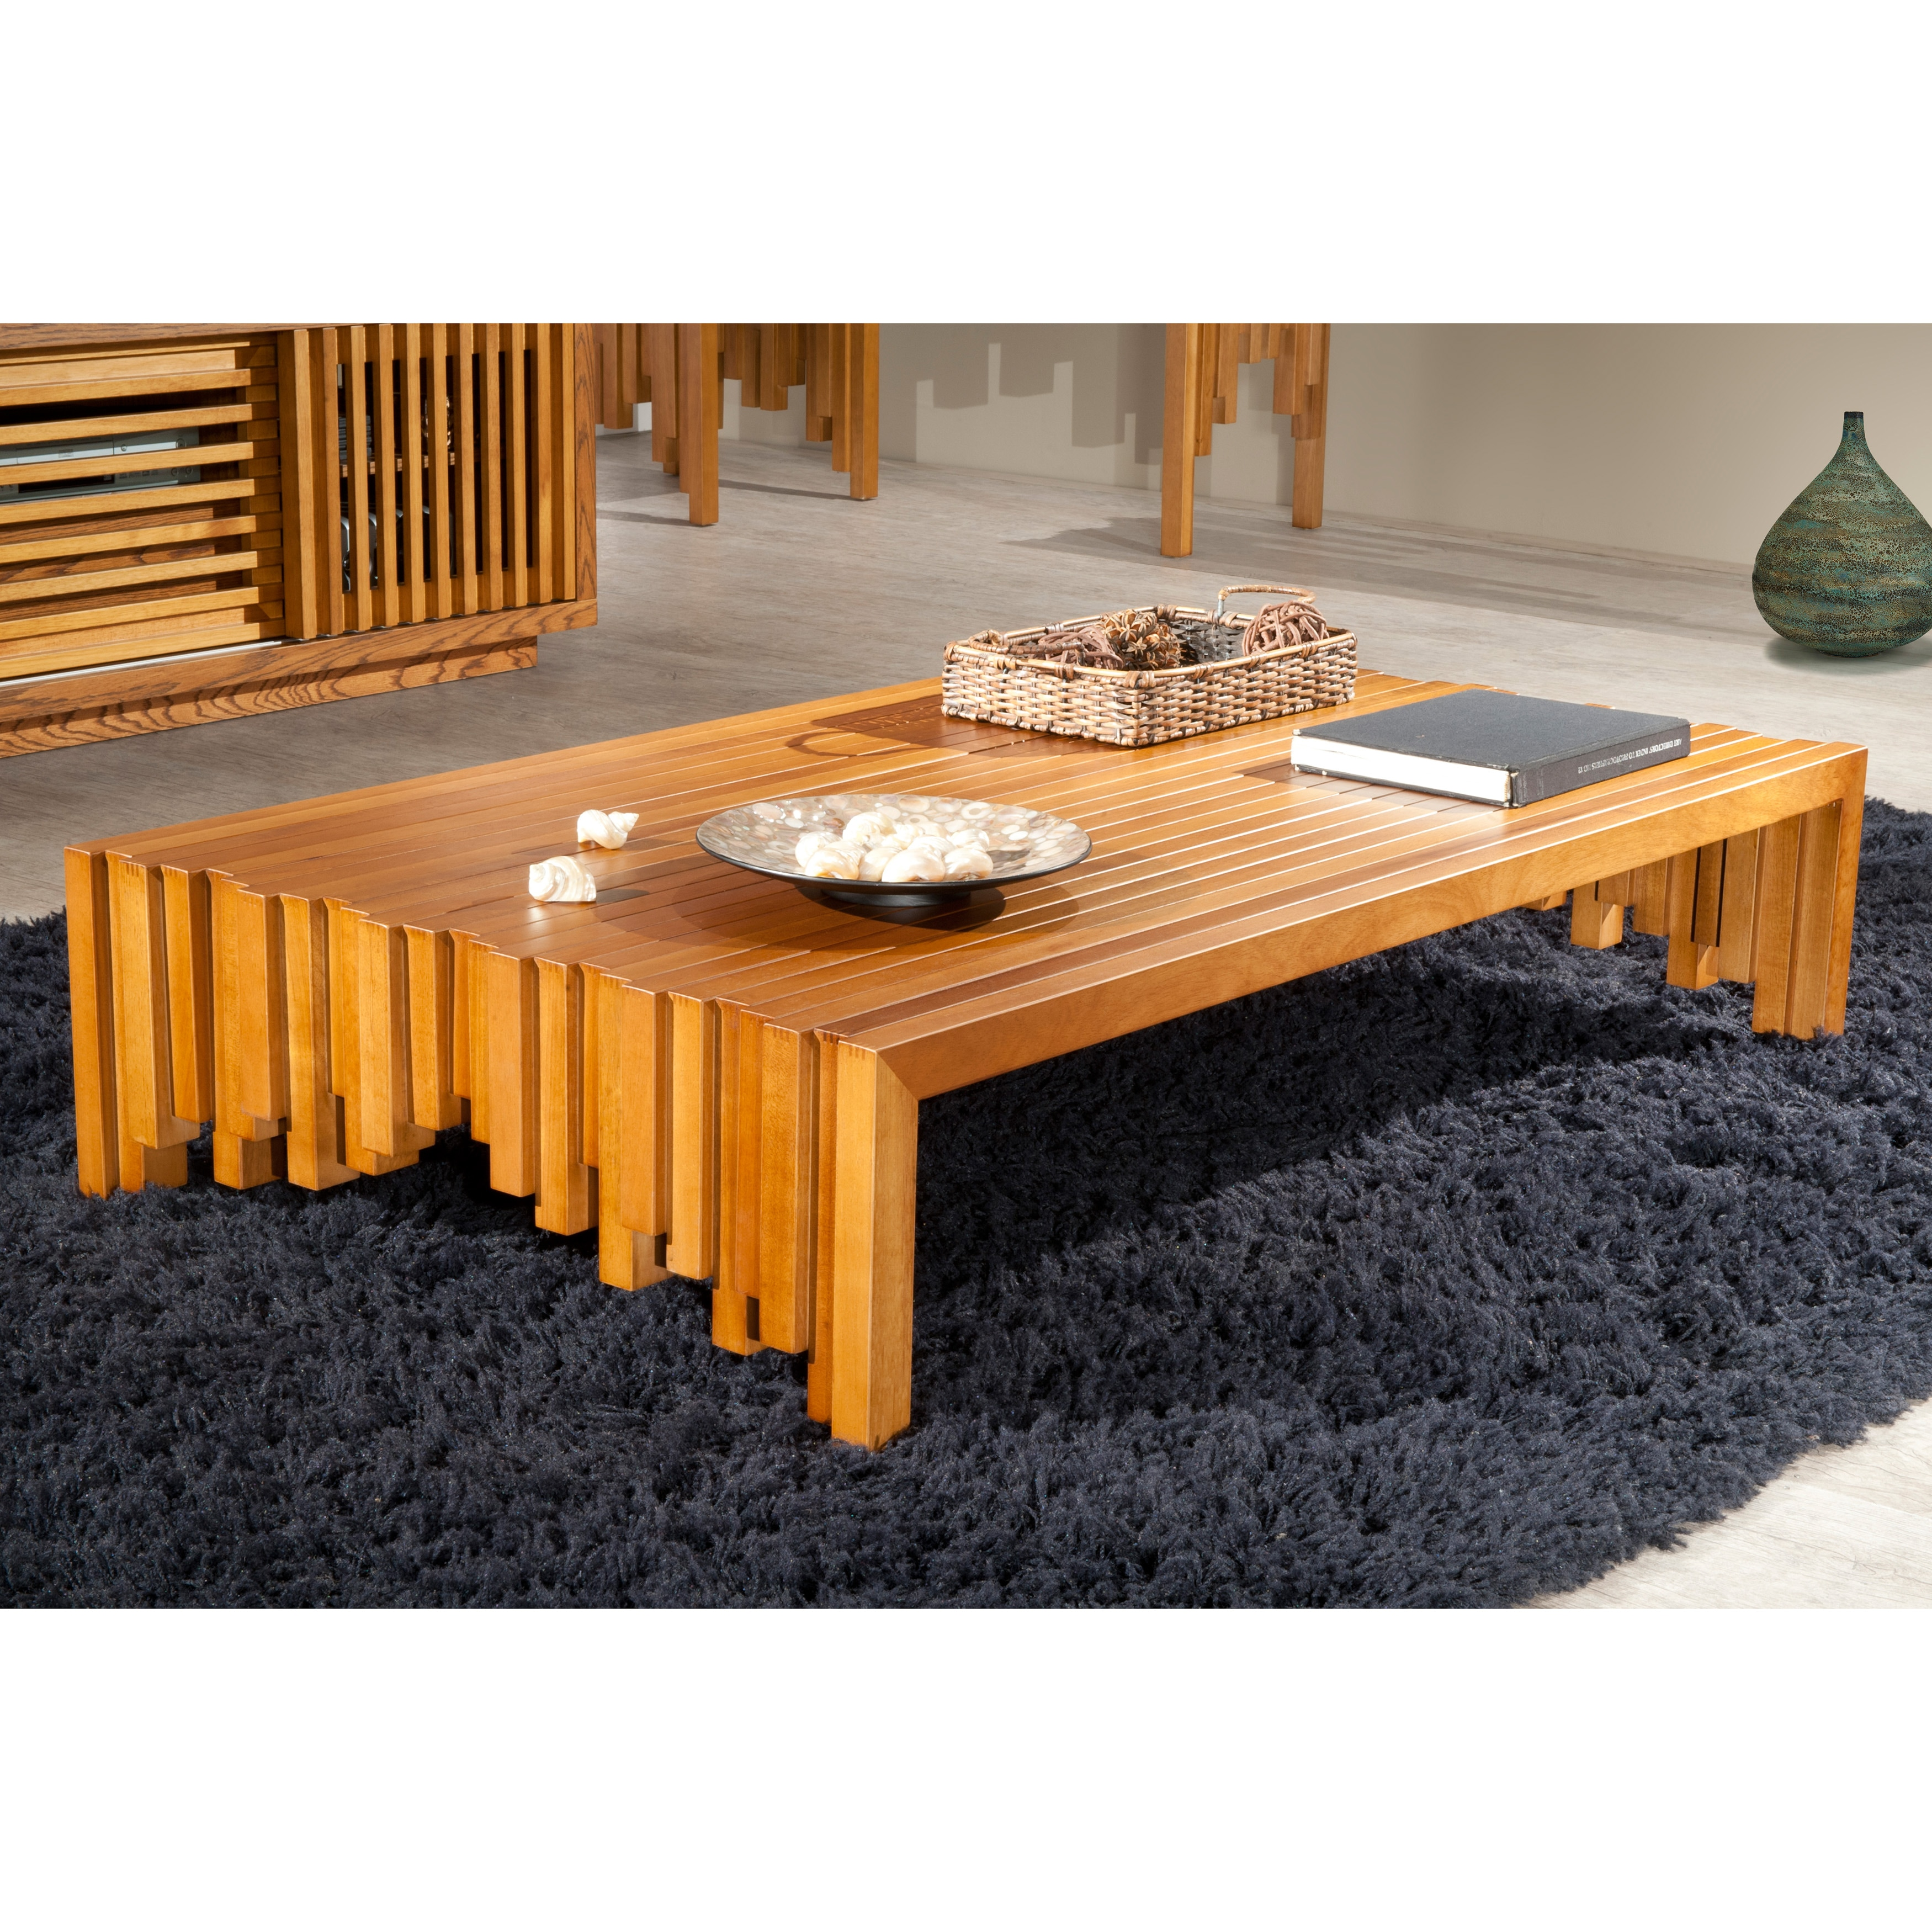 Brazilian Cherry Wood Rustic Coffee Table